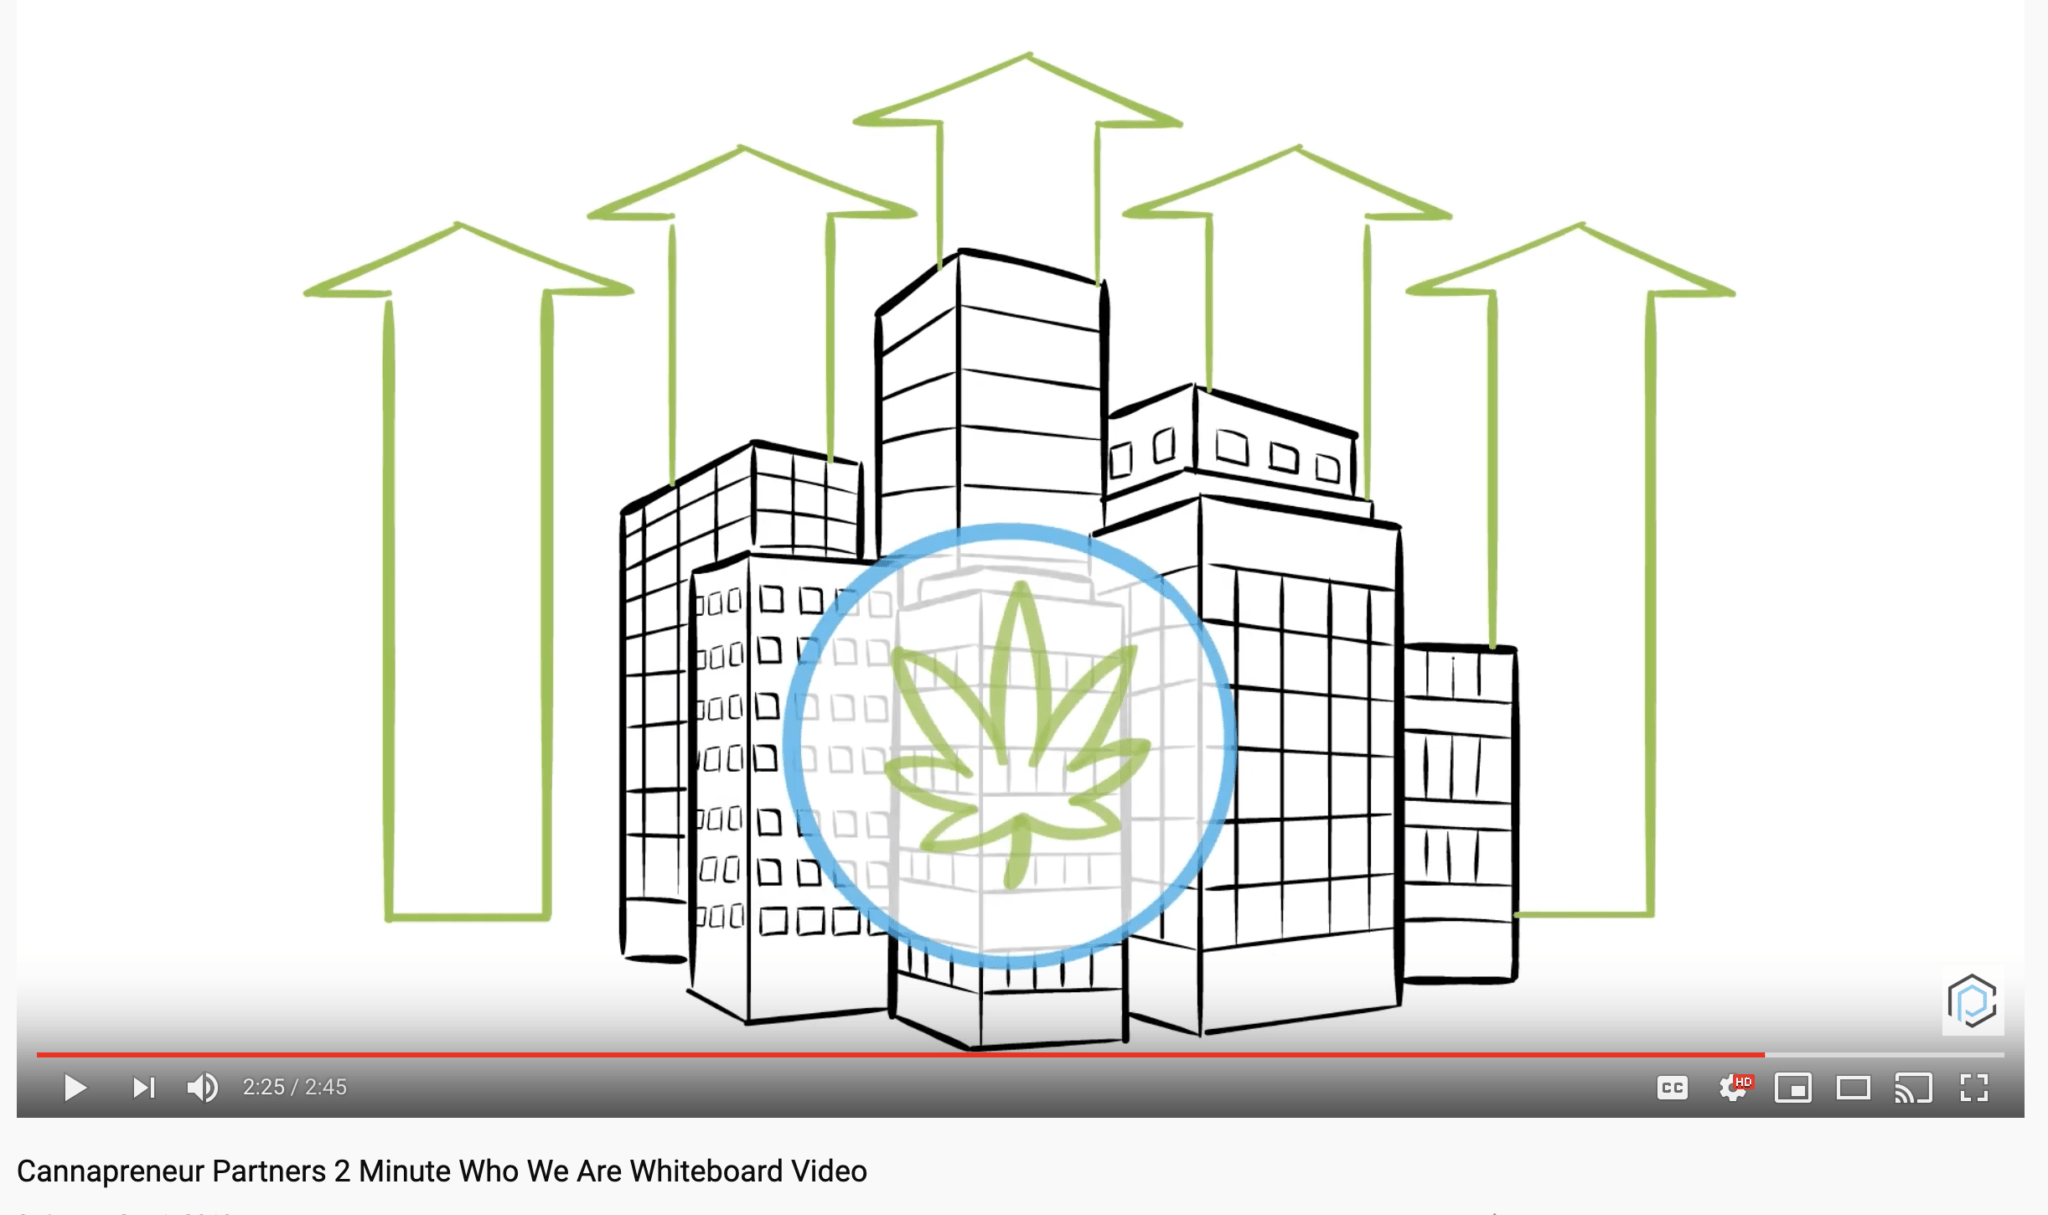 GOT 2 MINUTES? CURIOUS ABOUT CANNABIS INVESTMENTS? US? WATCH THIS.